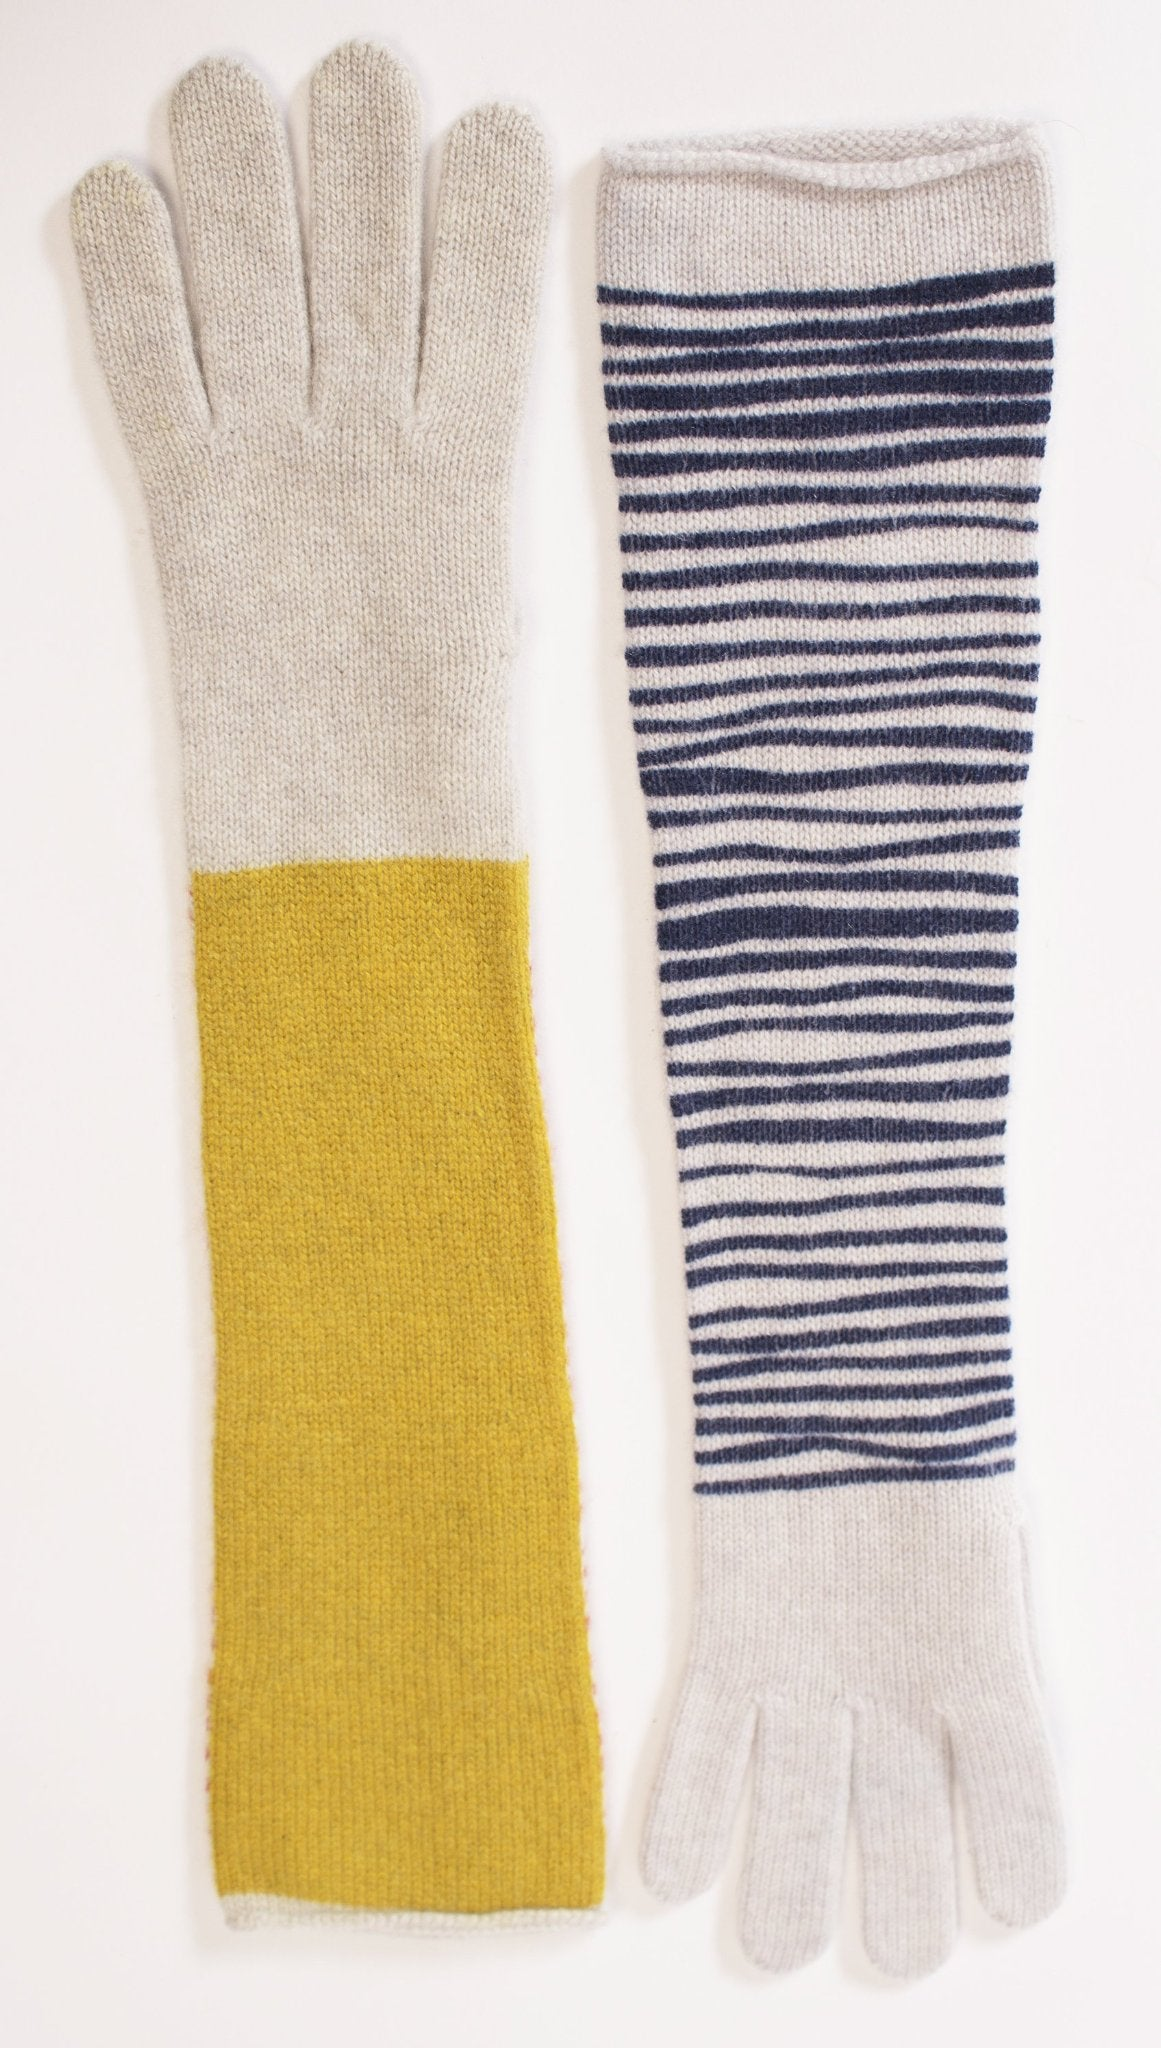 Ladies long cashmere glove - stripe back.